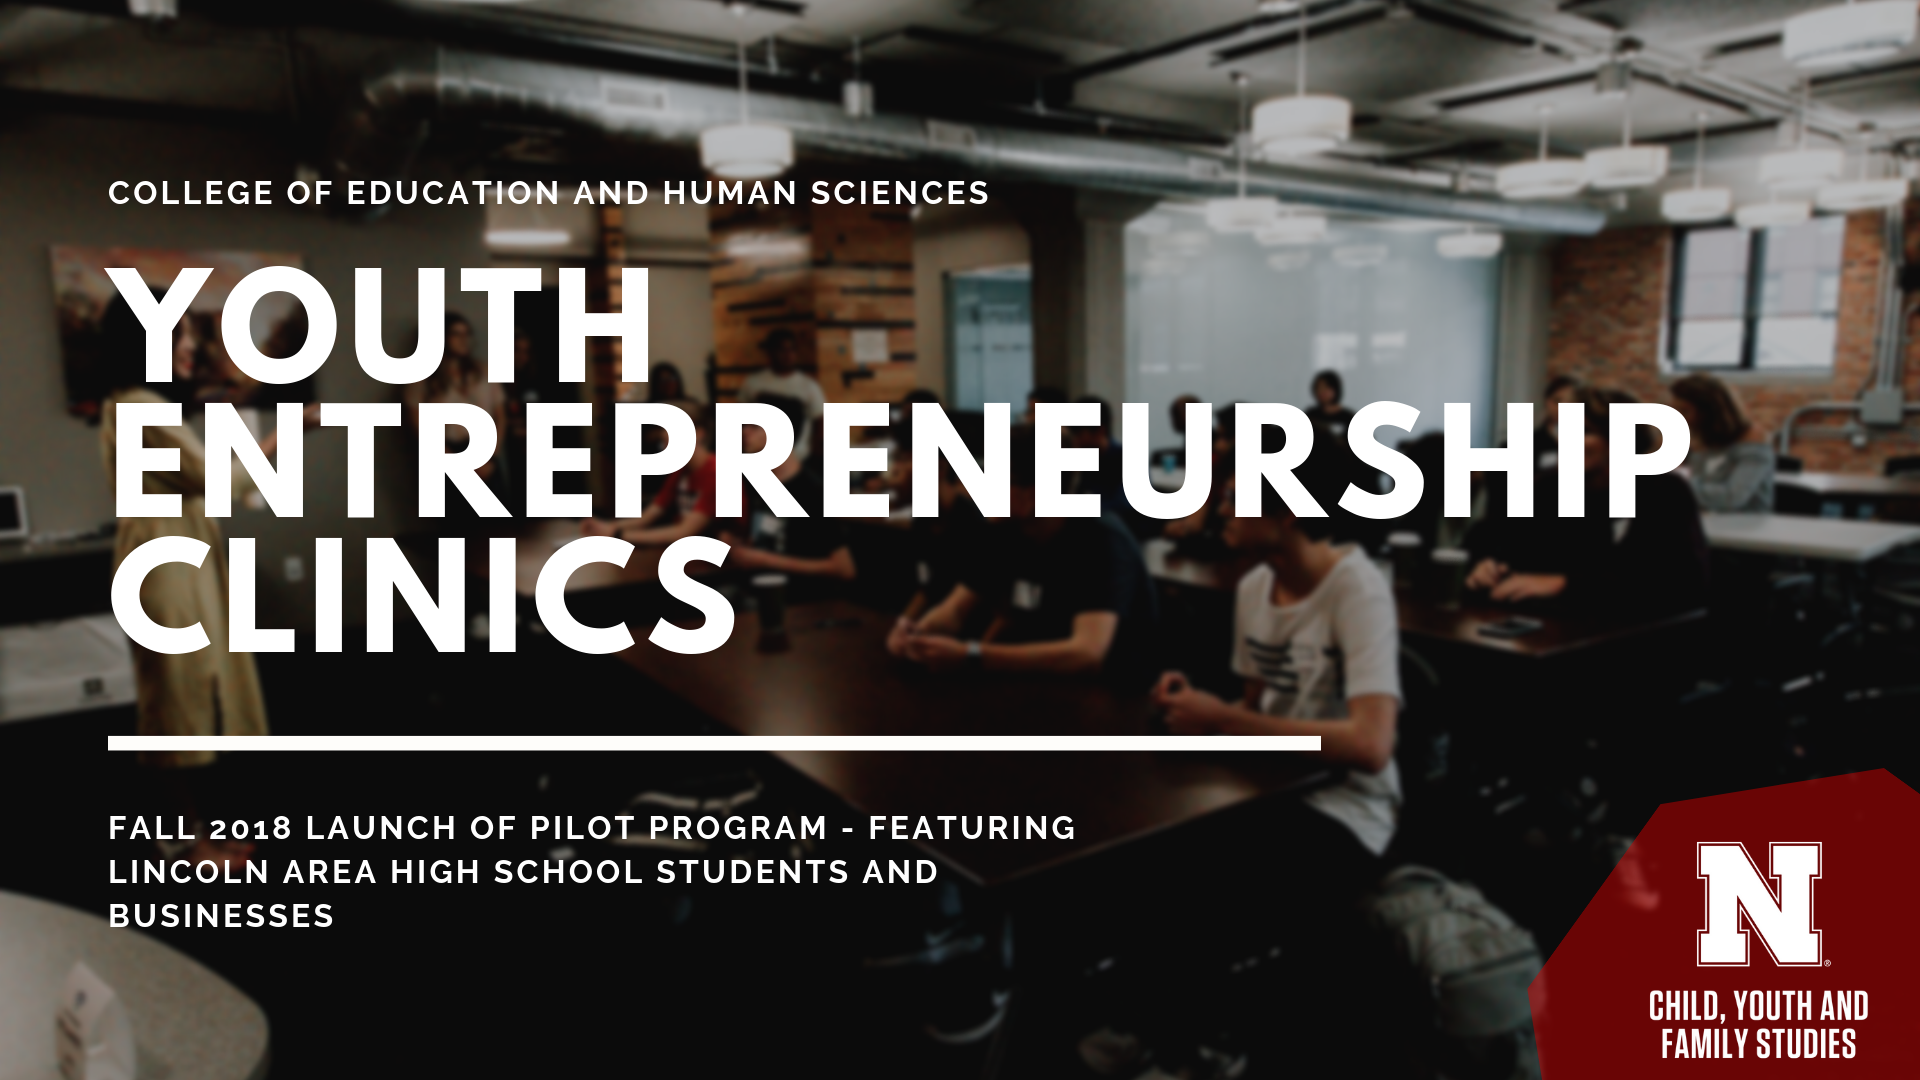 Youth Entrepreneurship Clinics in Child, Youth and Family Studies at the University of Nebraska-Lincoln enter a new pilot phase.